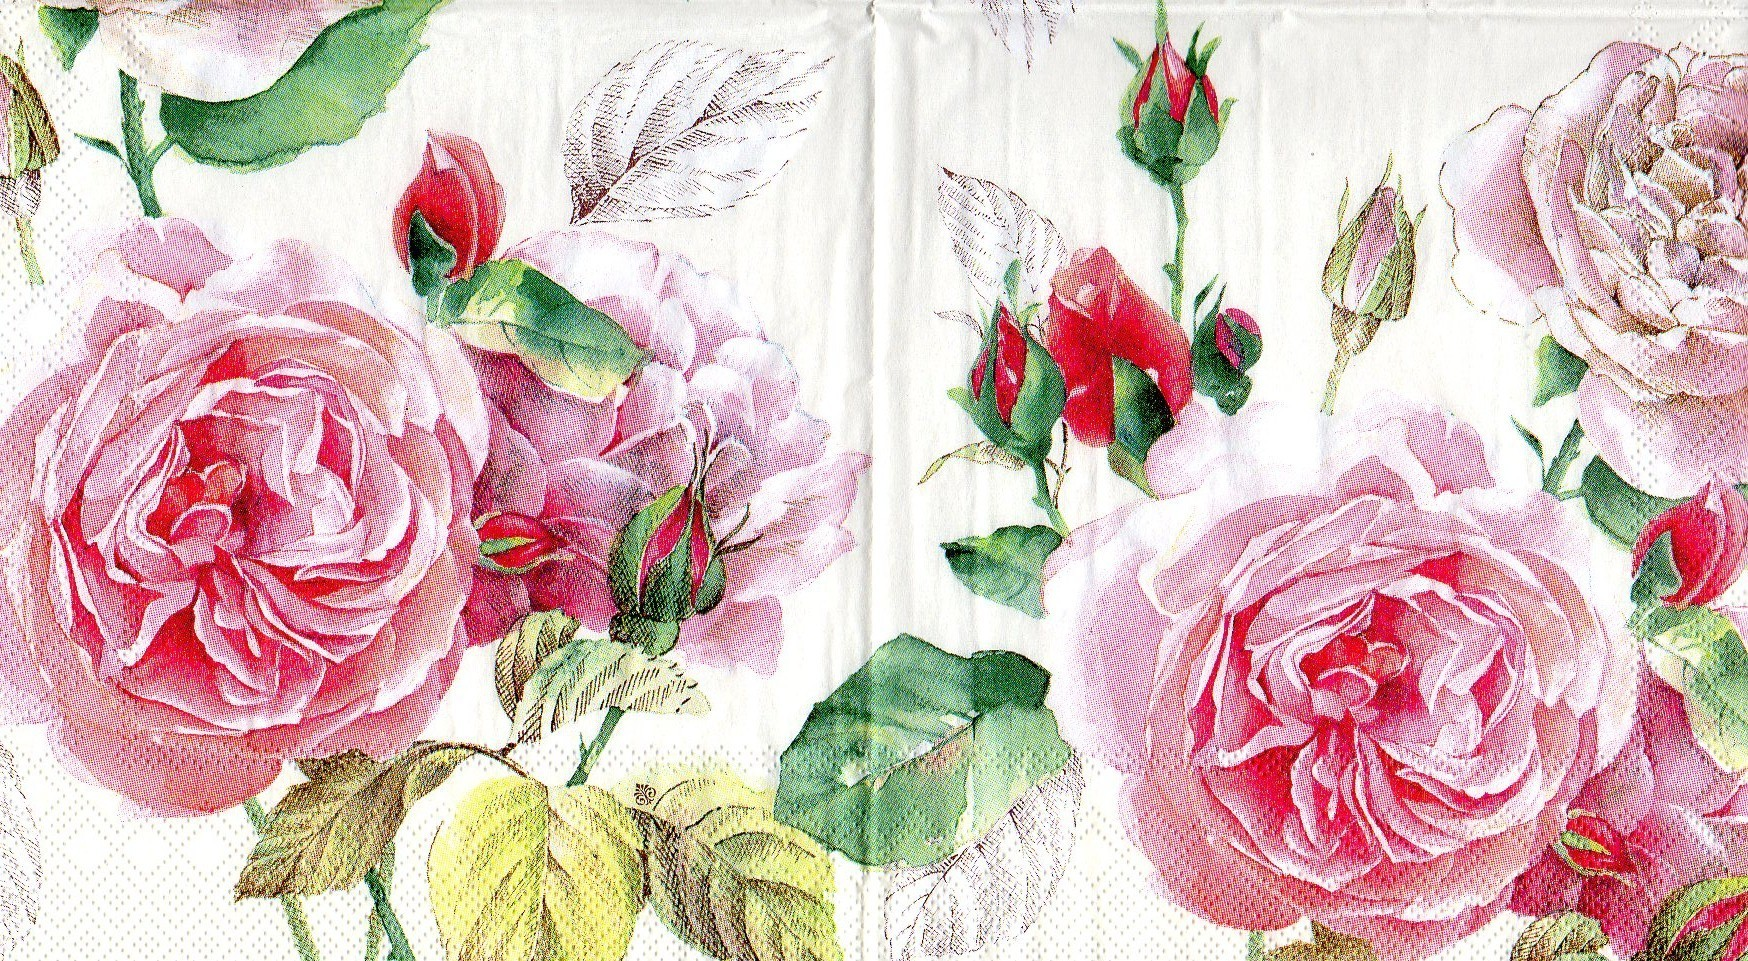 Rosa Servietten Serviette Tea Rose White Serviettenrausch